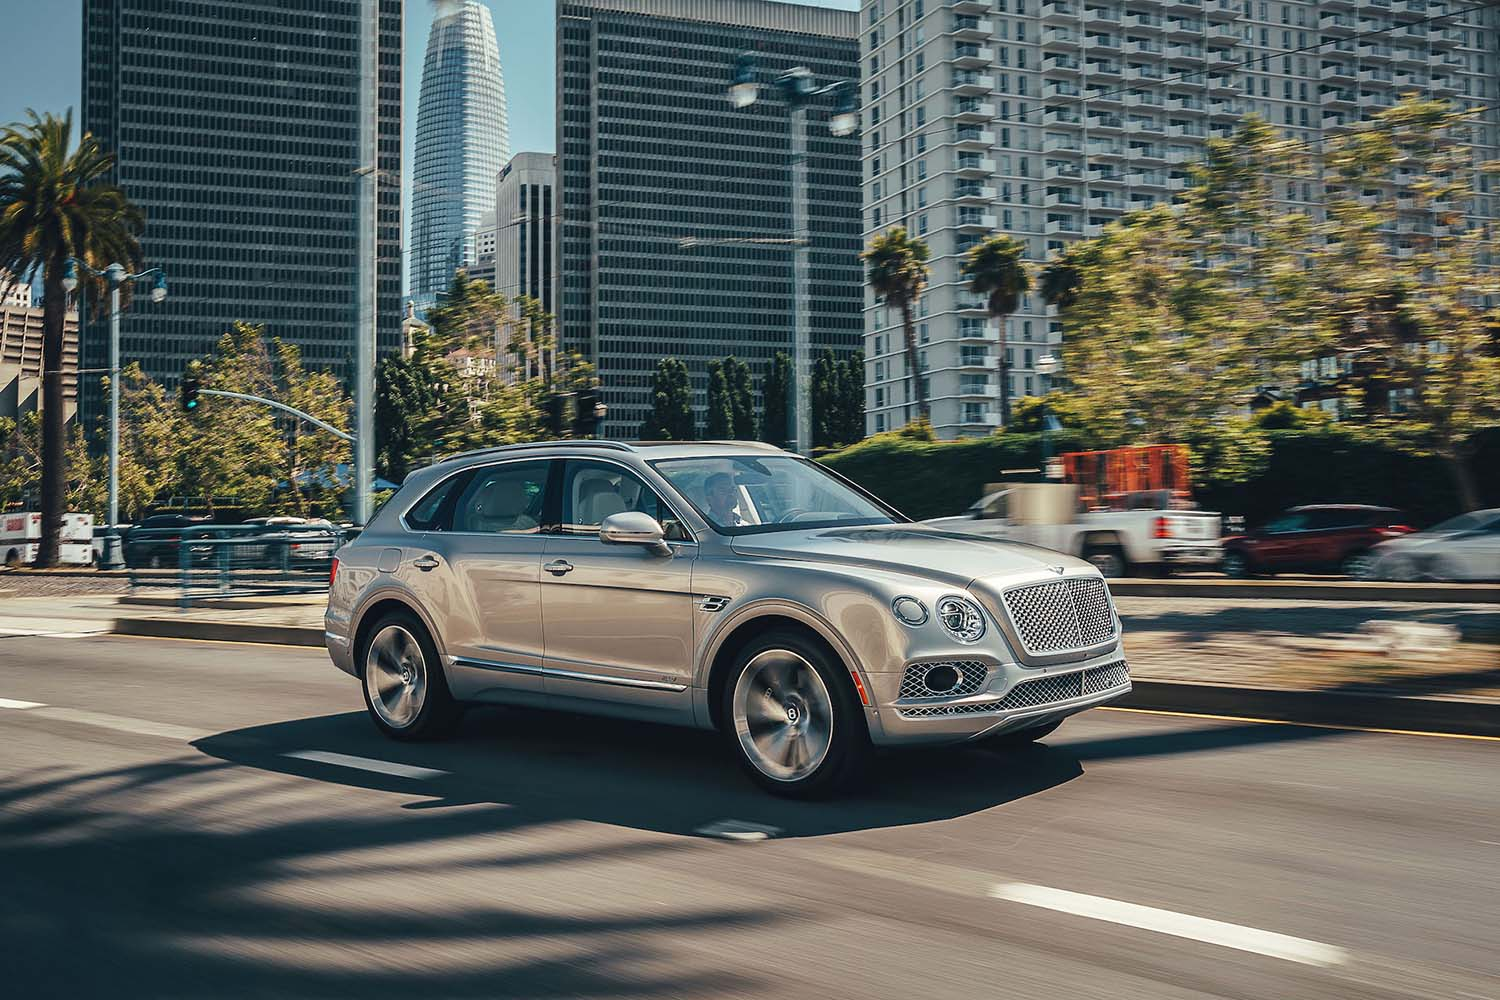 Top 10 Sustainable Luxury Cars for 2020: Bentley Bentayga Hybrid